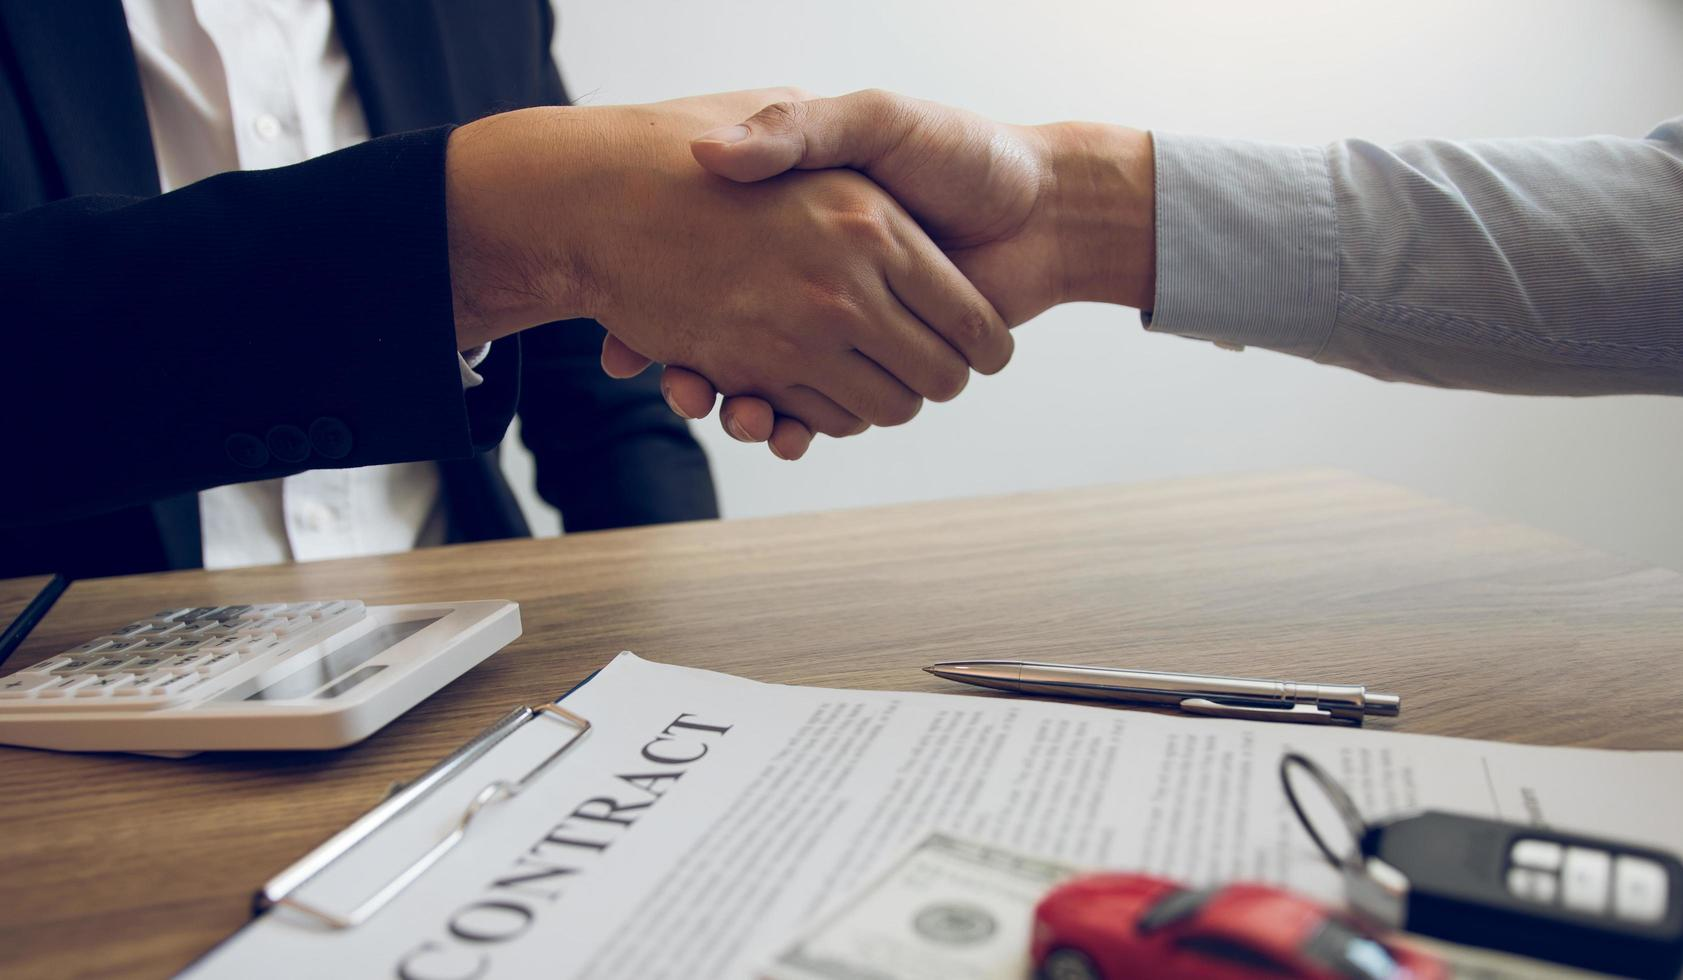 Client shaking hands with car salesman  photo